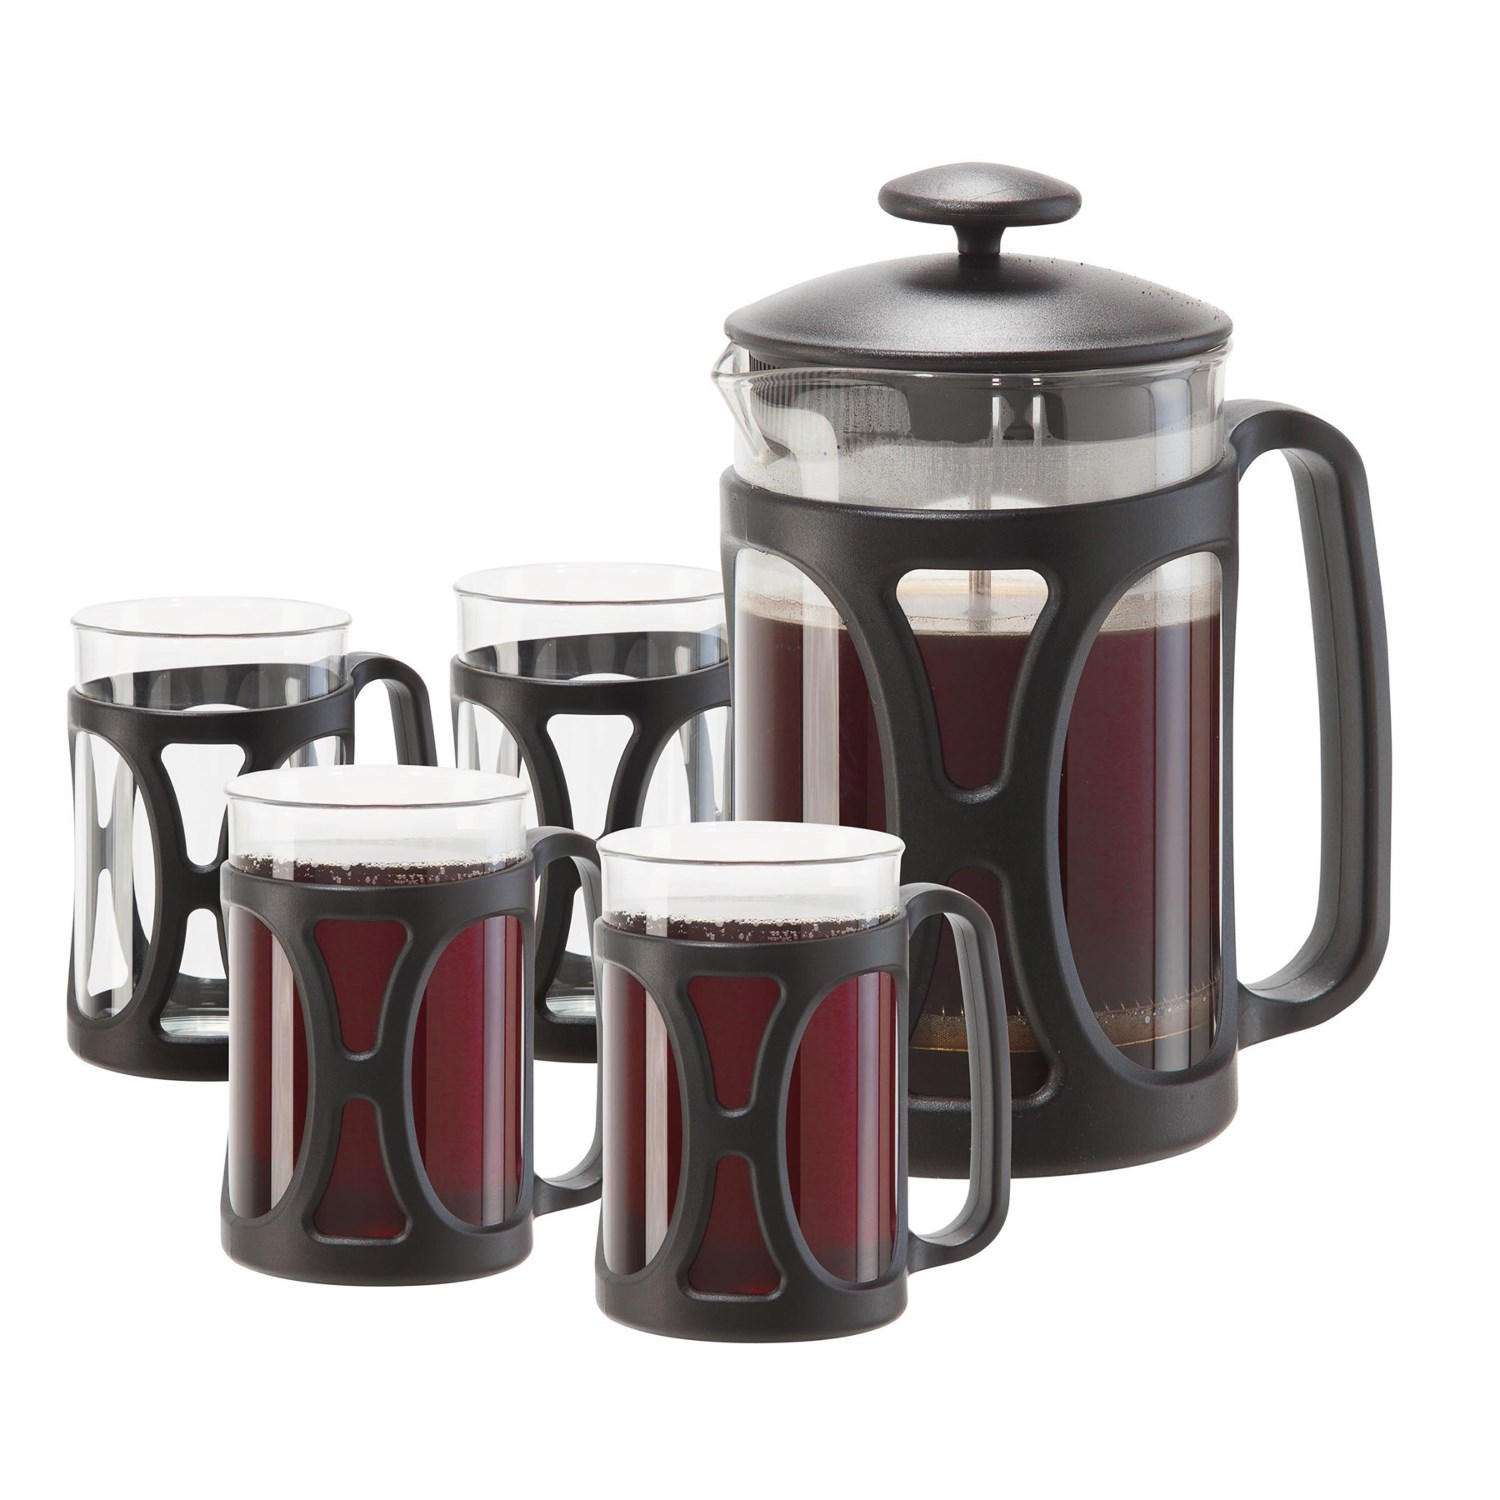 8-cup French press coffee maker Five-piece set includes: Four 6.75 fl.oz. glass cups with handles Heat-resistant borosilicate glass Made in China Overstock. Brew up eight delicious cups of coffee -- or your favorite loose-leaf tea -- with this OGGI French press coffee set, complete with four heat-resistant borosilicate glass mugs for sharing with lucky guests. Press has built-in lid filter to reduce sediment; can also be used to brew loose-leaf tea